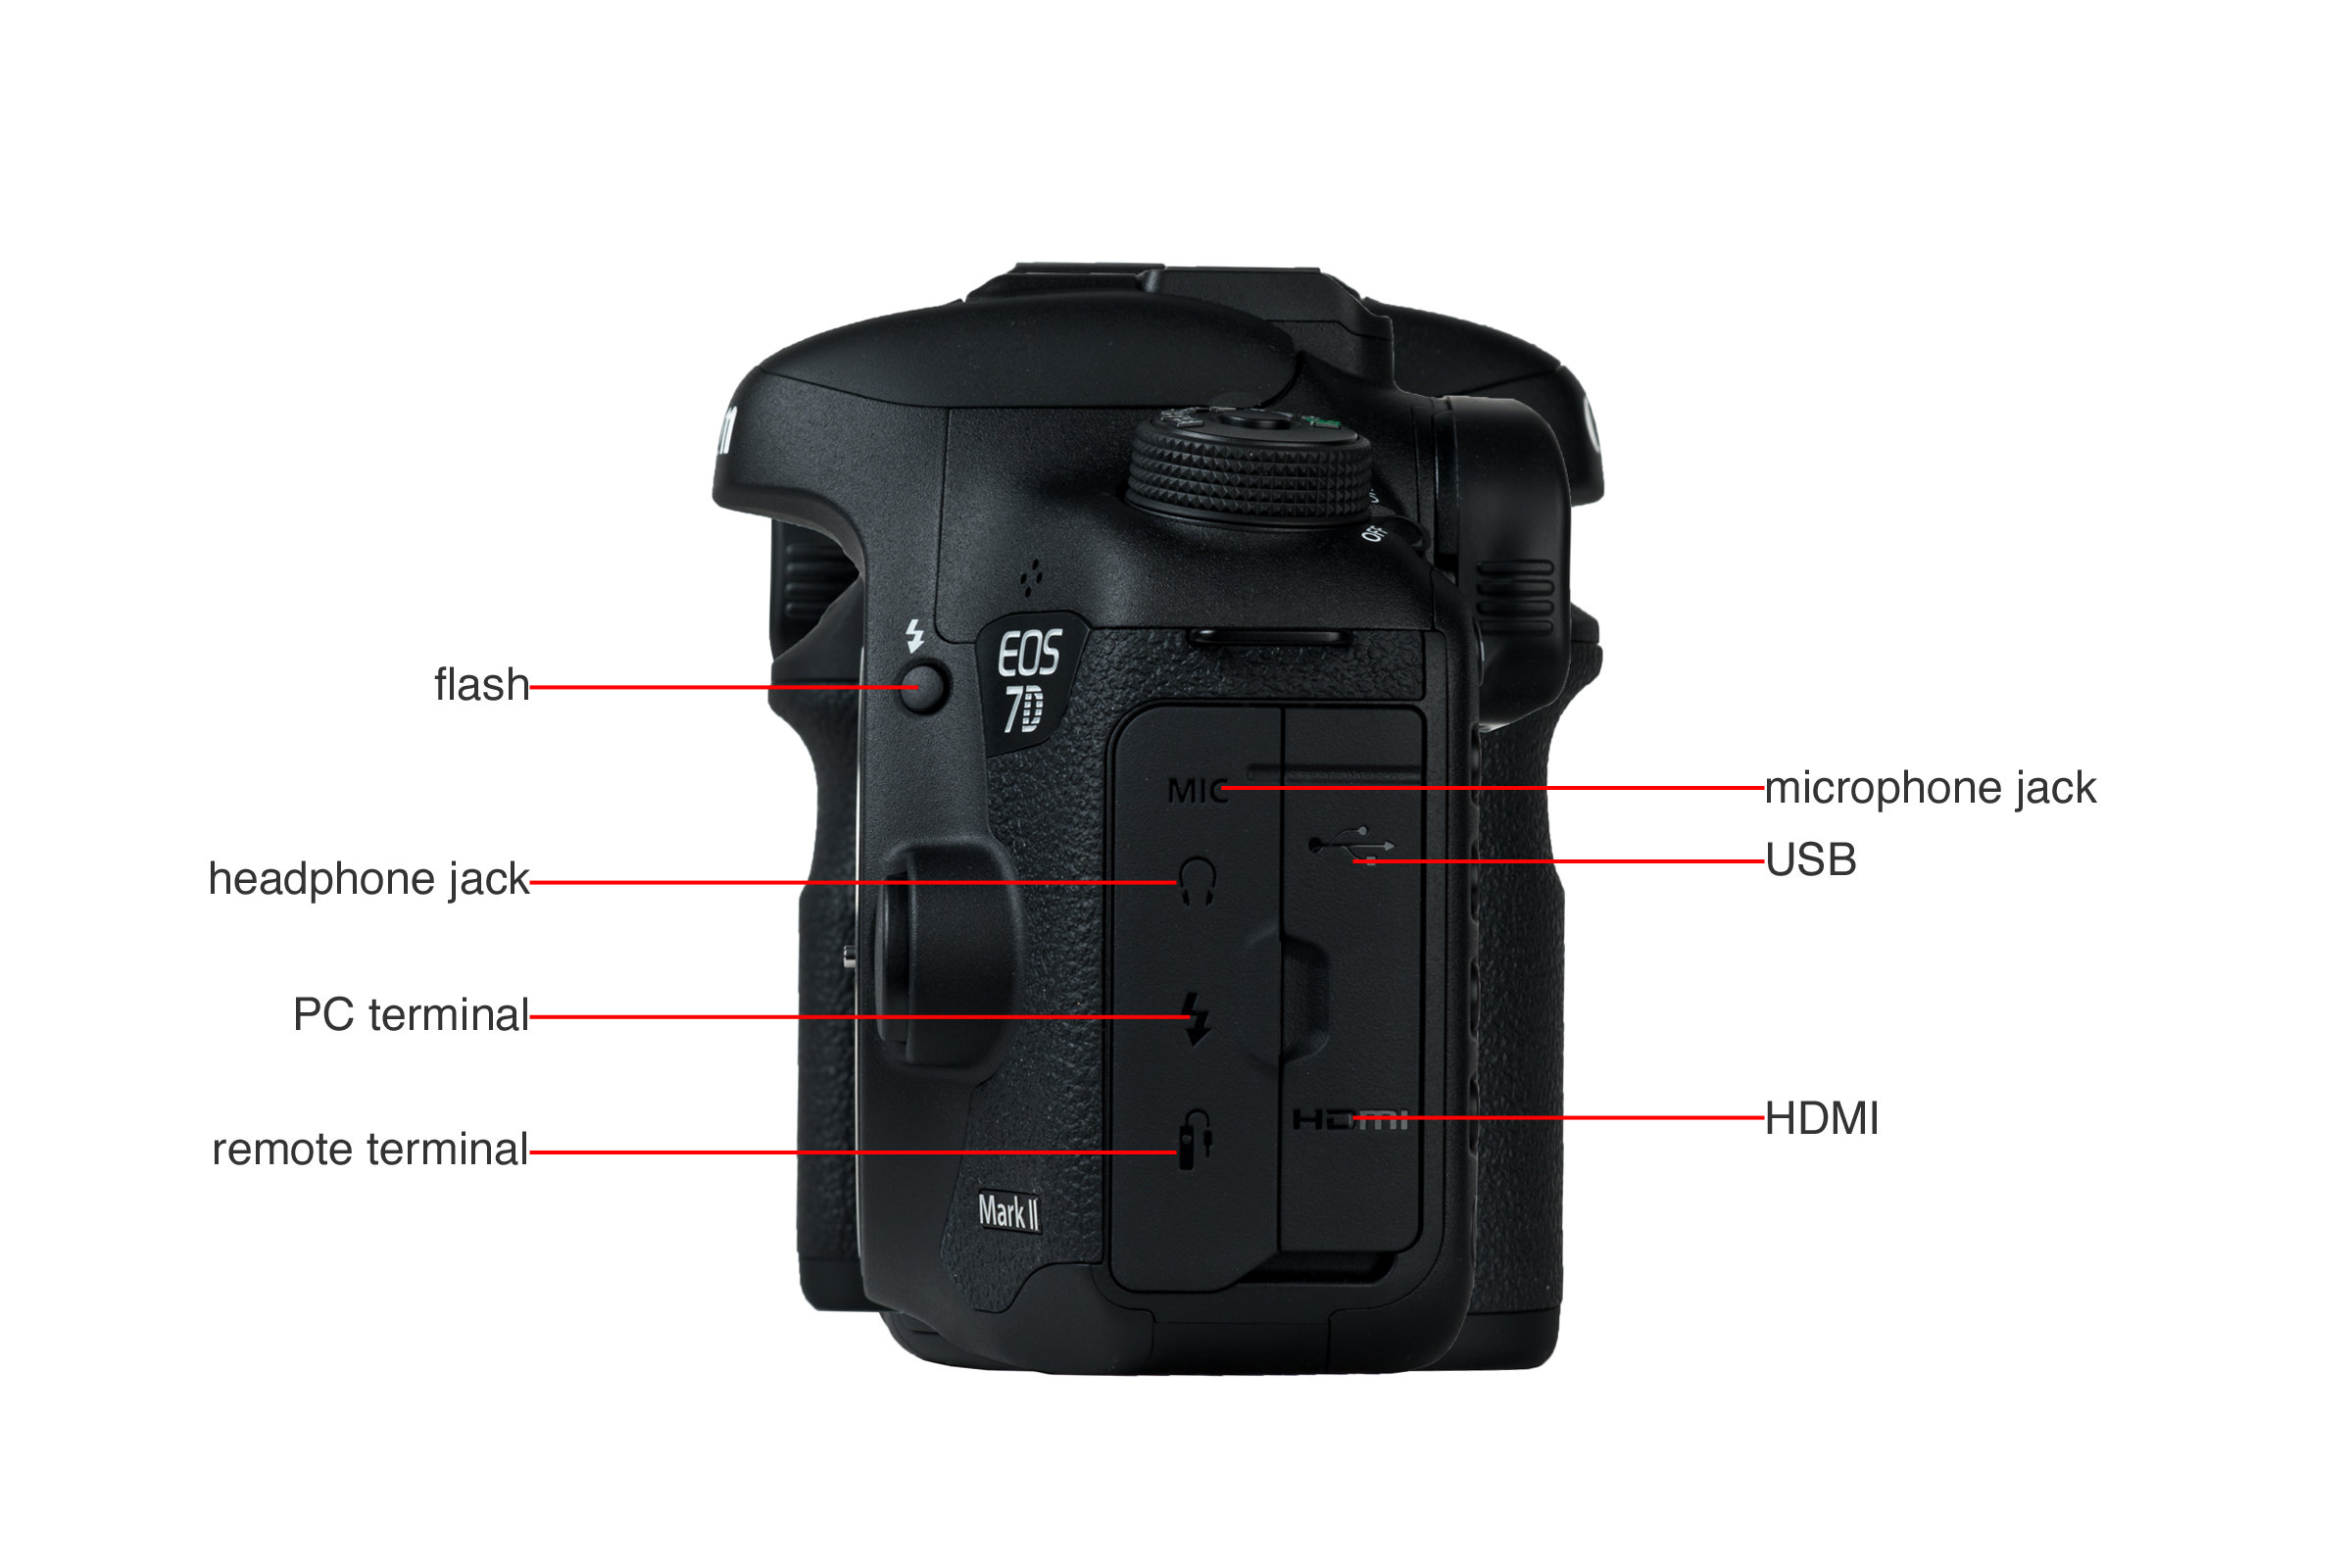 A picture illustrating the buttons and controls of the Canon 7D MkII's left.